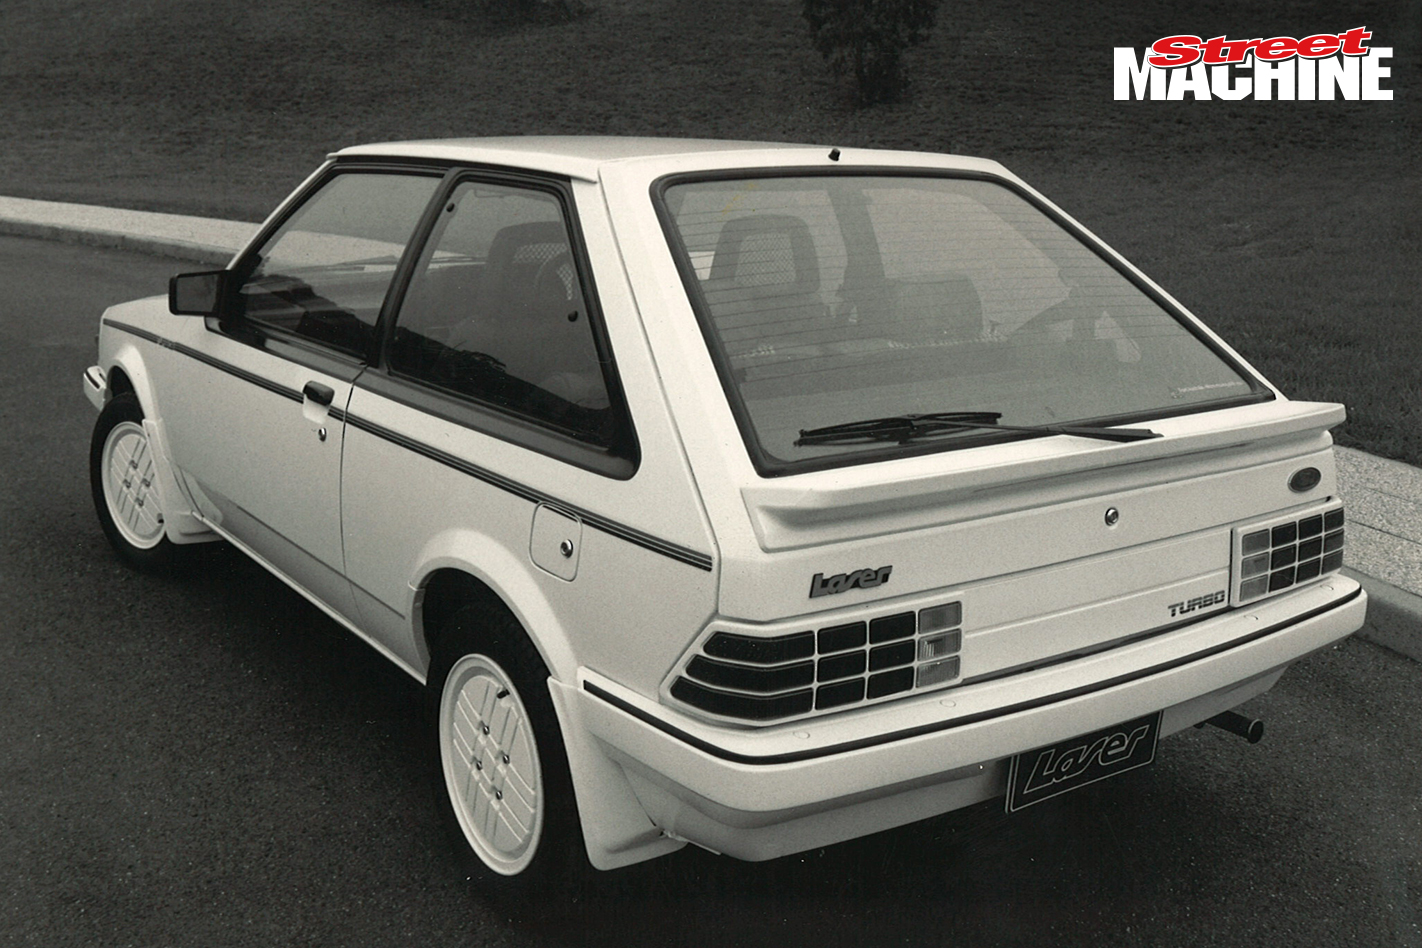 Ford Laser Turbo